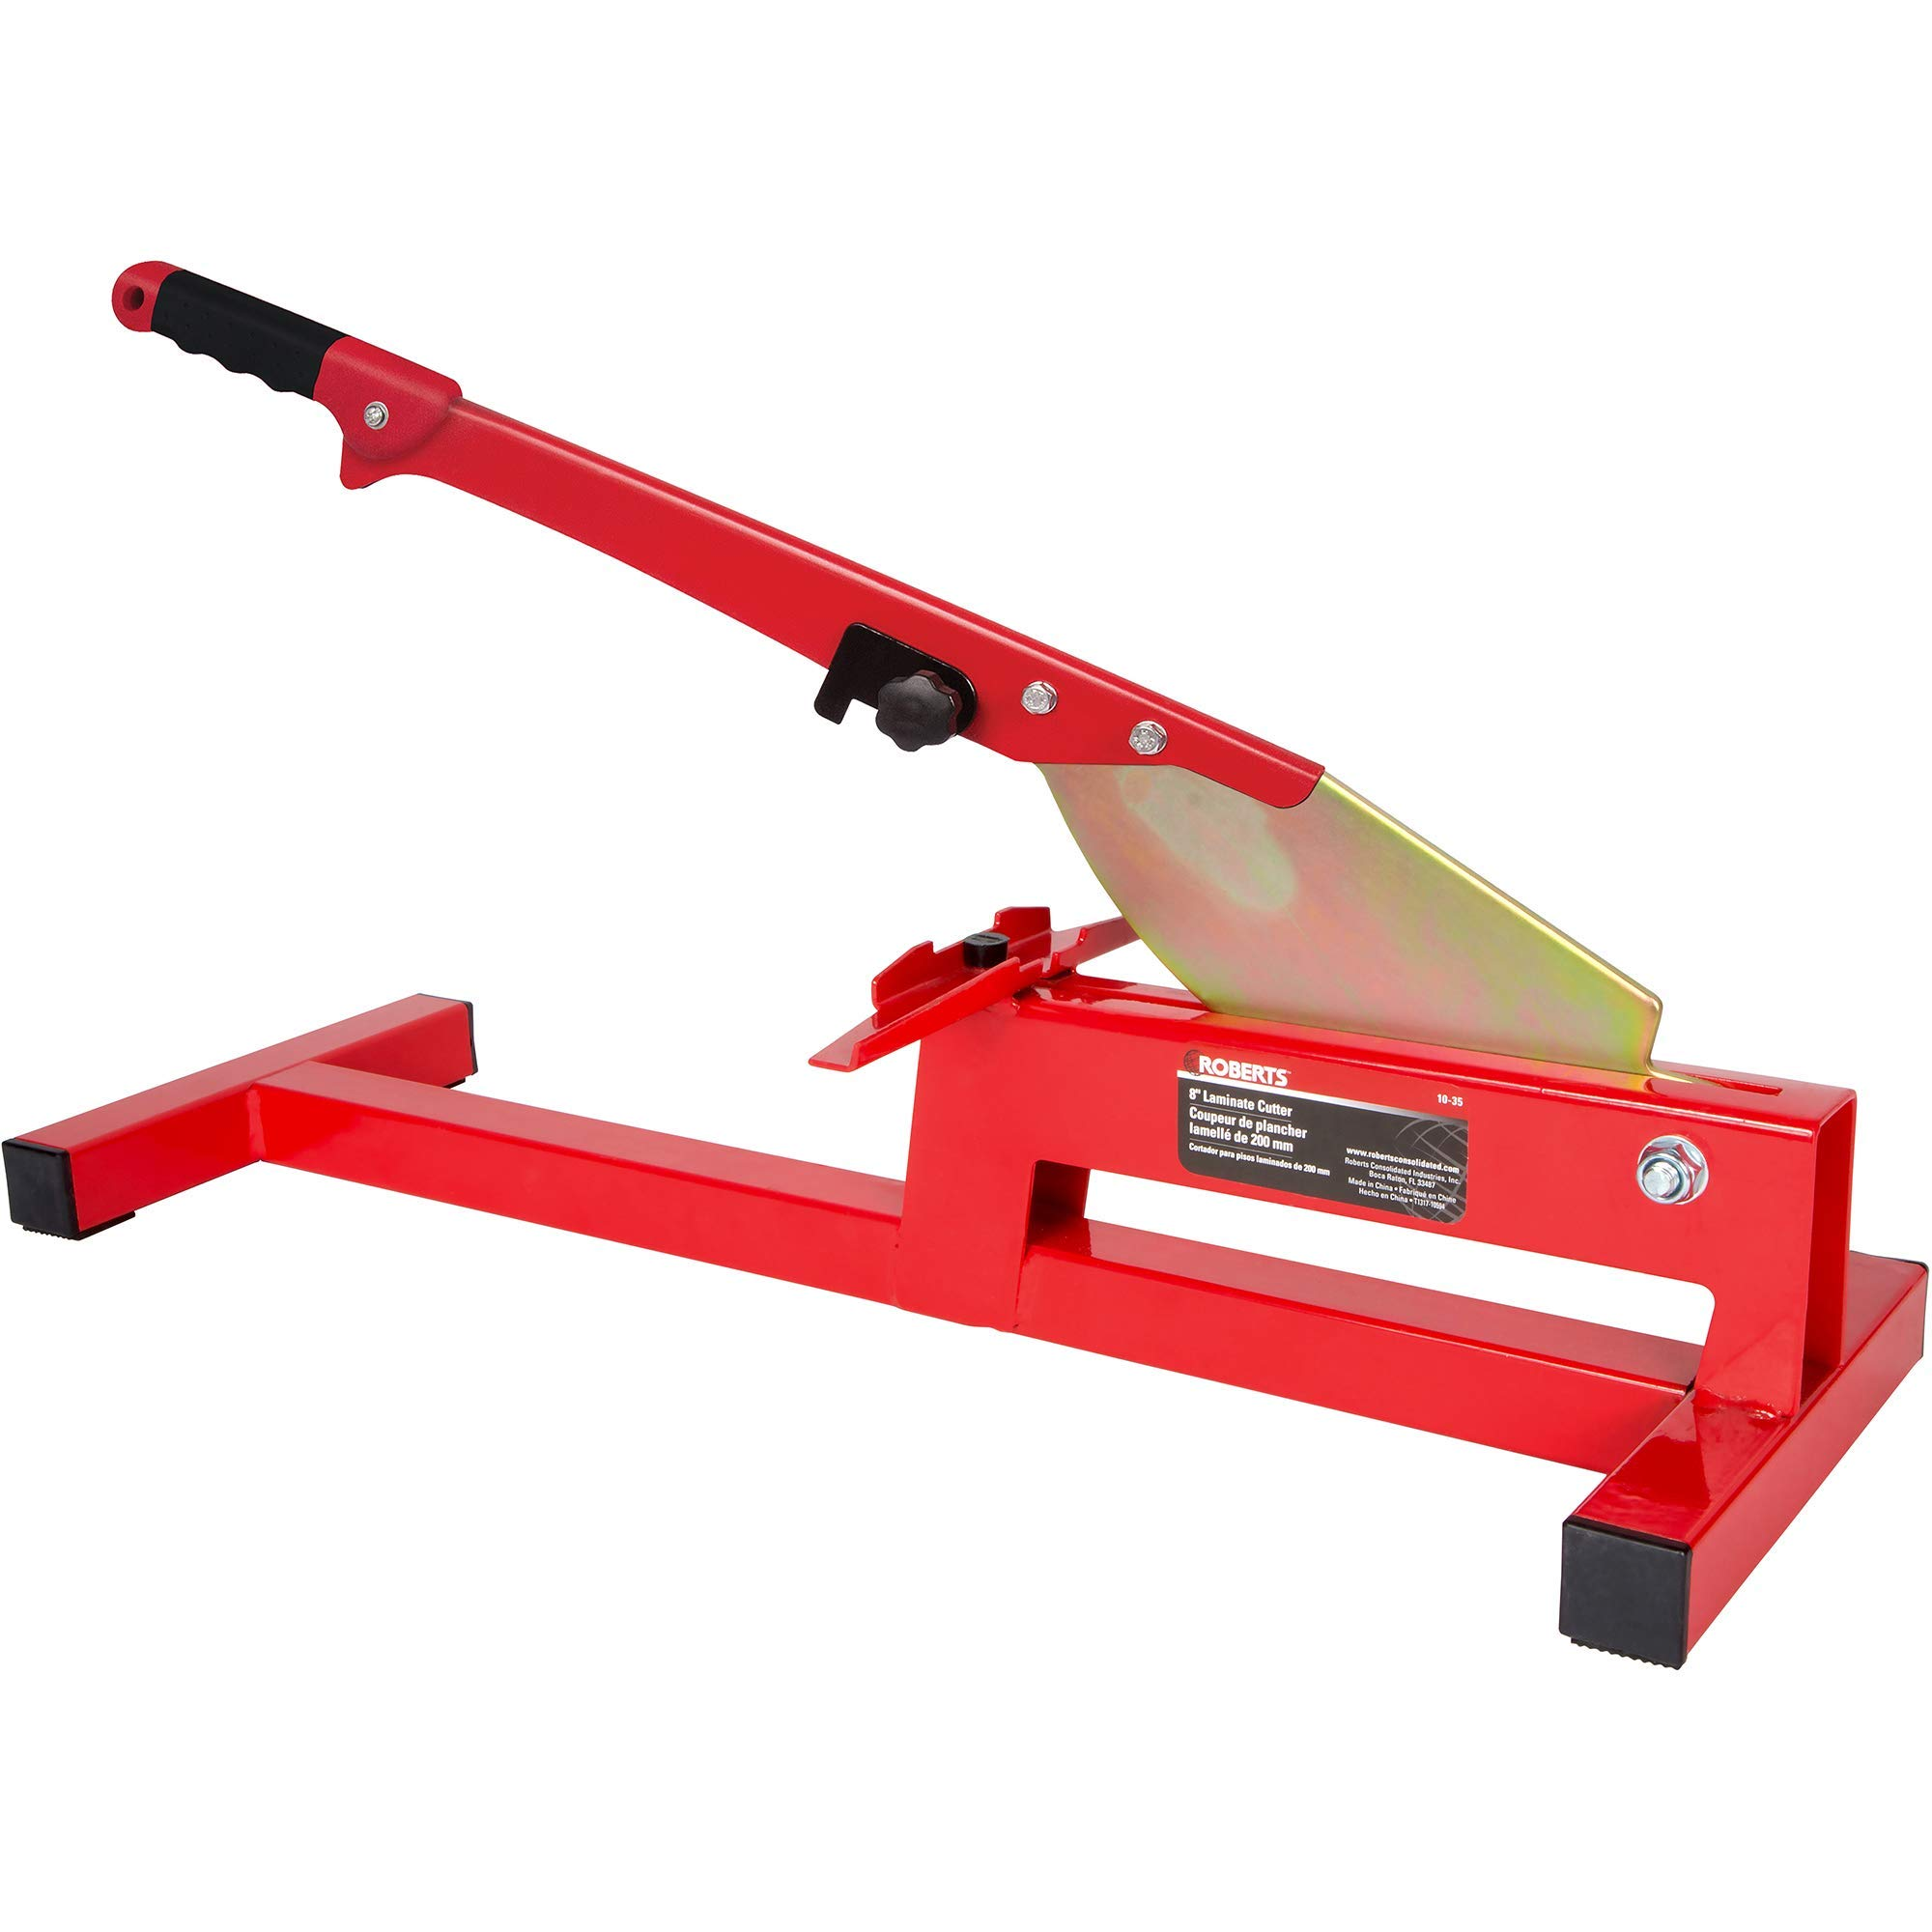 ROBERTS 10-35 Laminate Cutter (Renewed) by Roberts